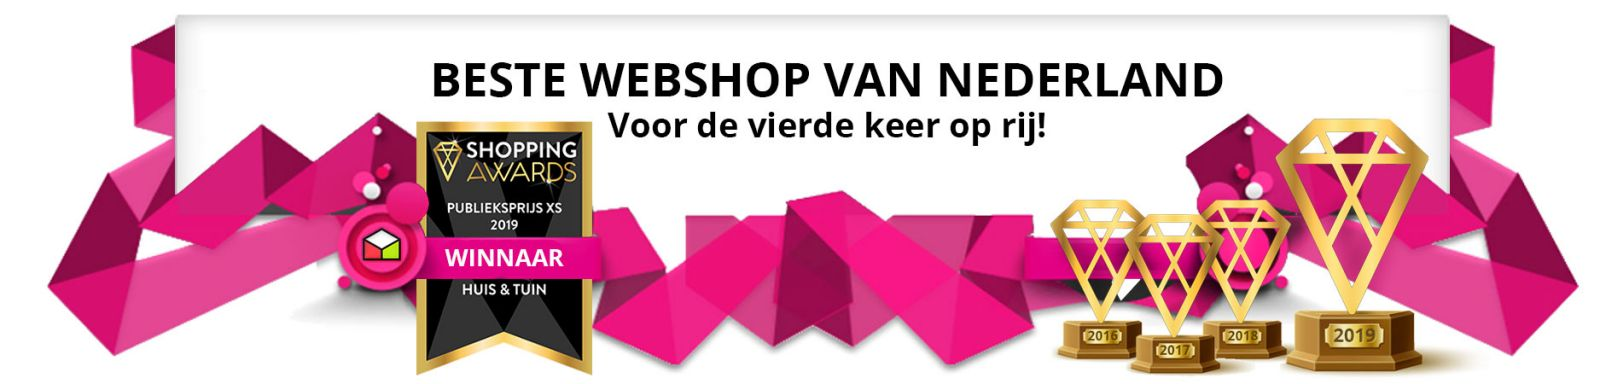 Kabelshop.nl is de trotste winnaar van de Shopping Awards 2019!